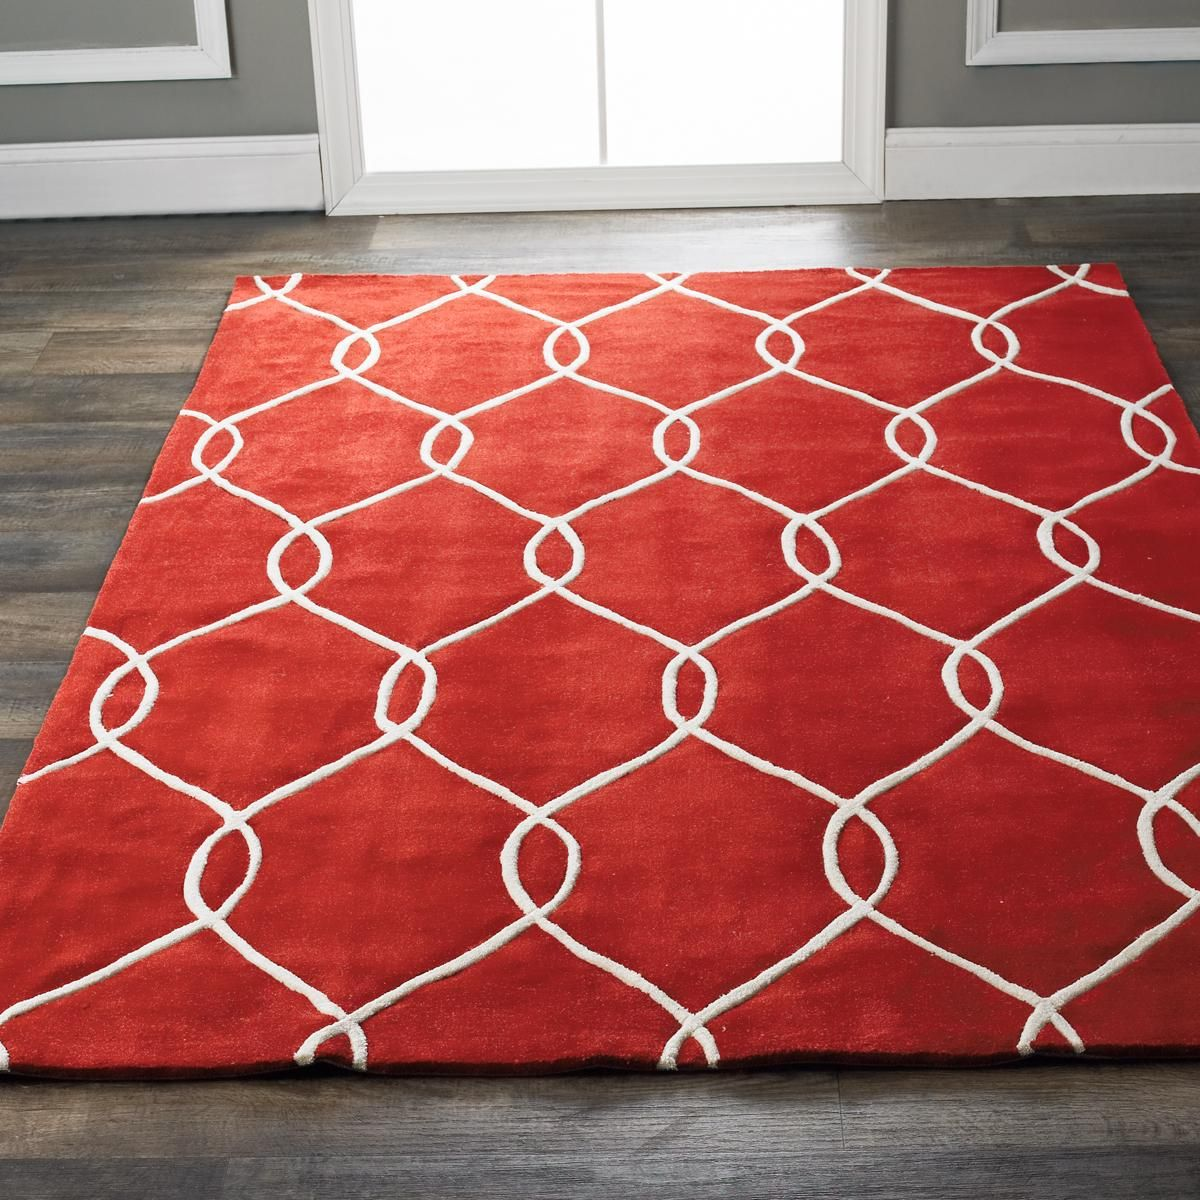 Plush Interlocking Trellis Rug